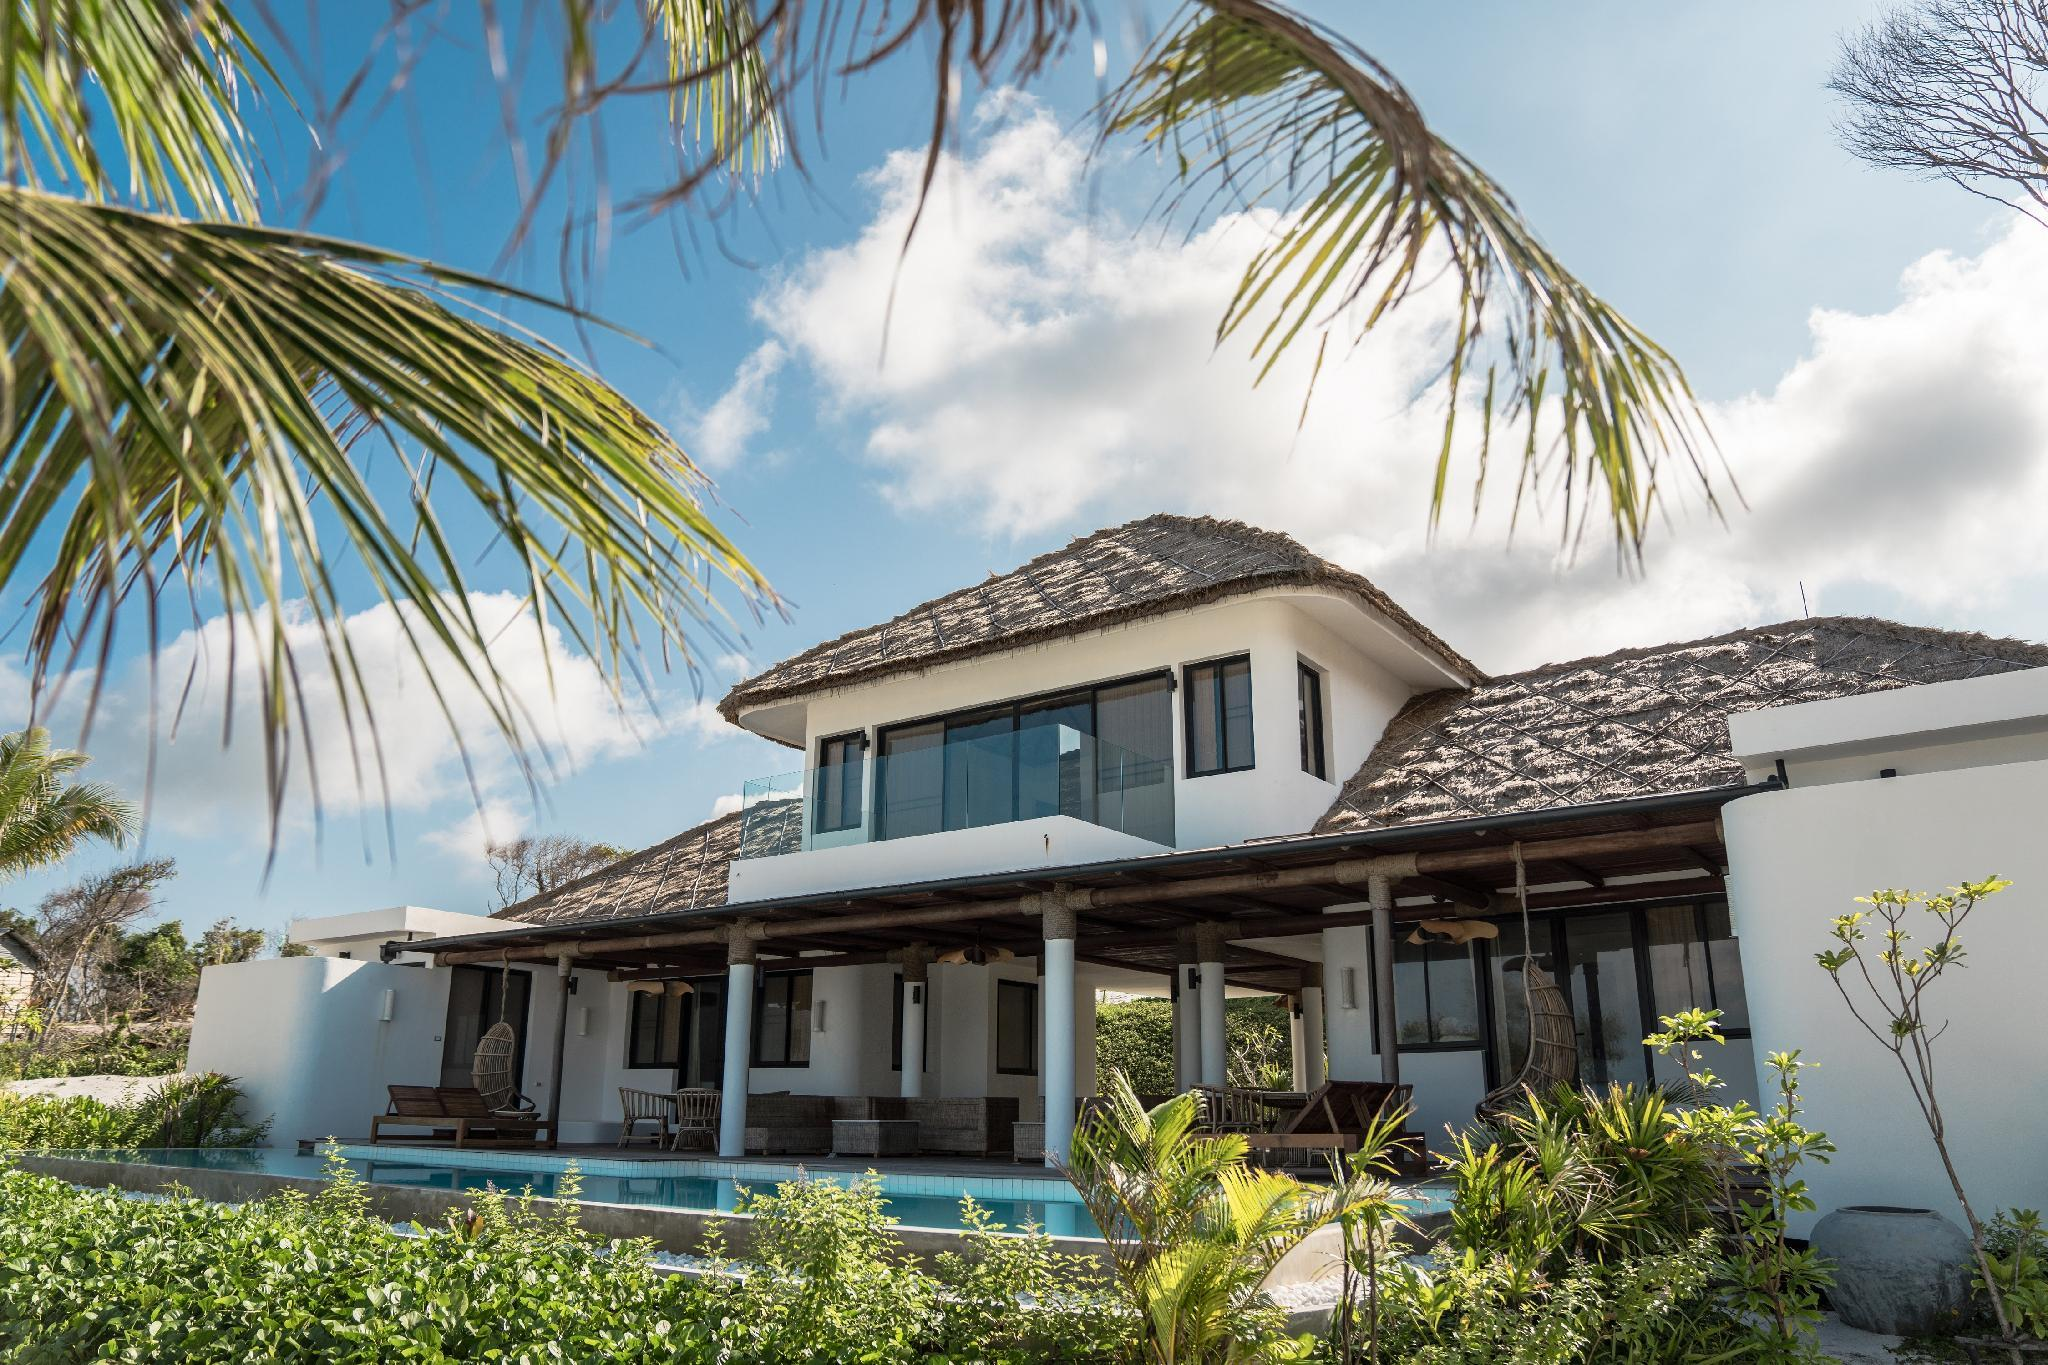 Poolvilla mit 3 Schlafzimmern am Strand (3-Bedroom Beachfront Pool Villa)